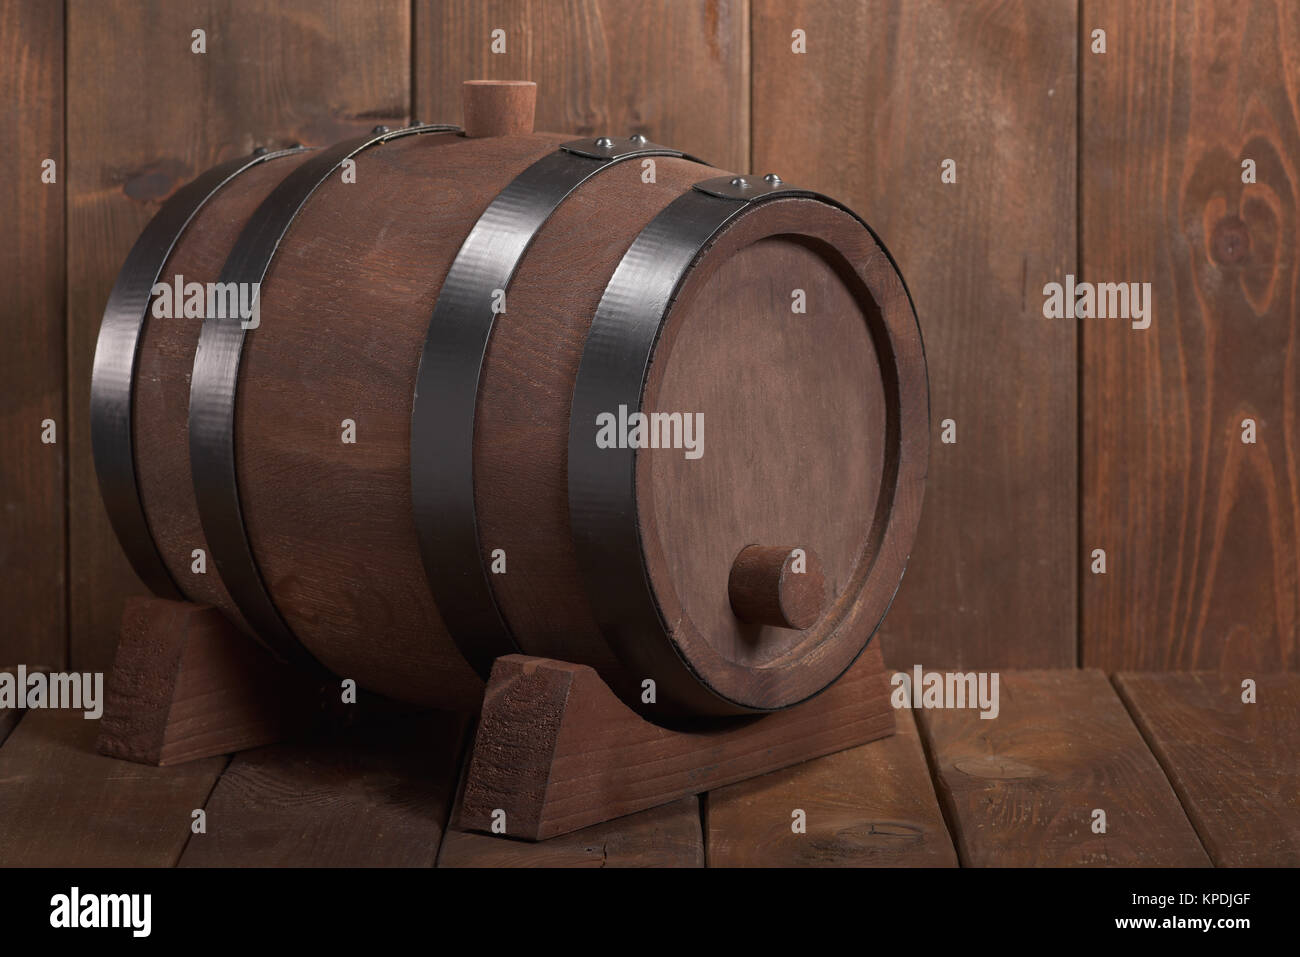 old wooden barrel - Stock Image